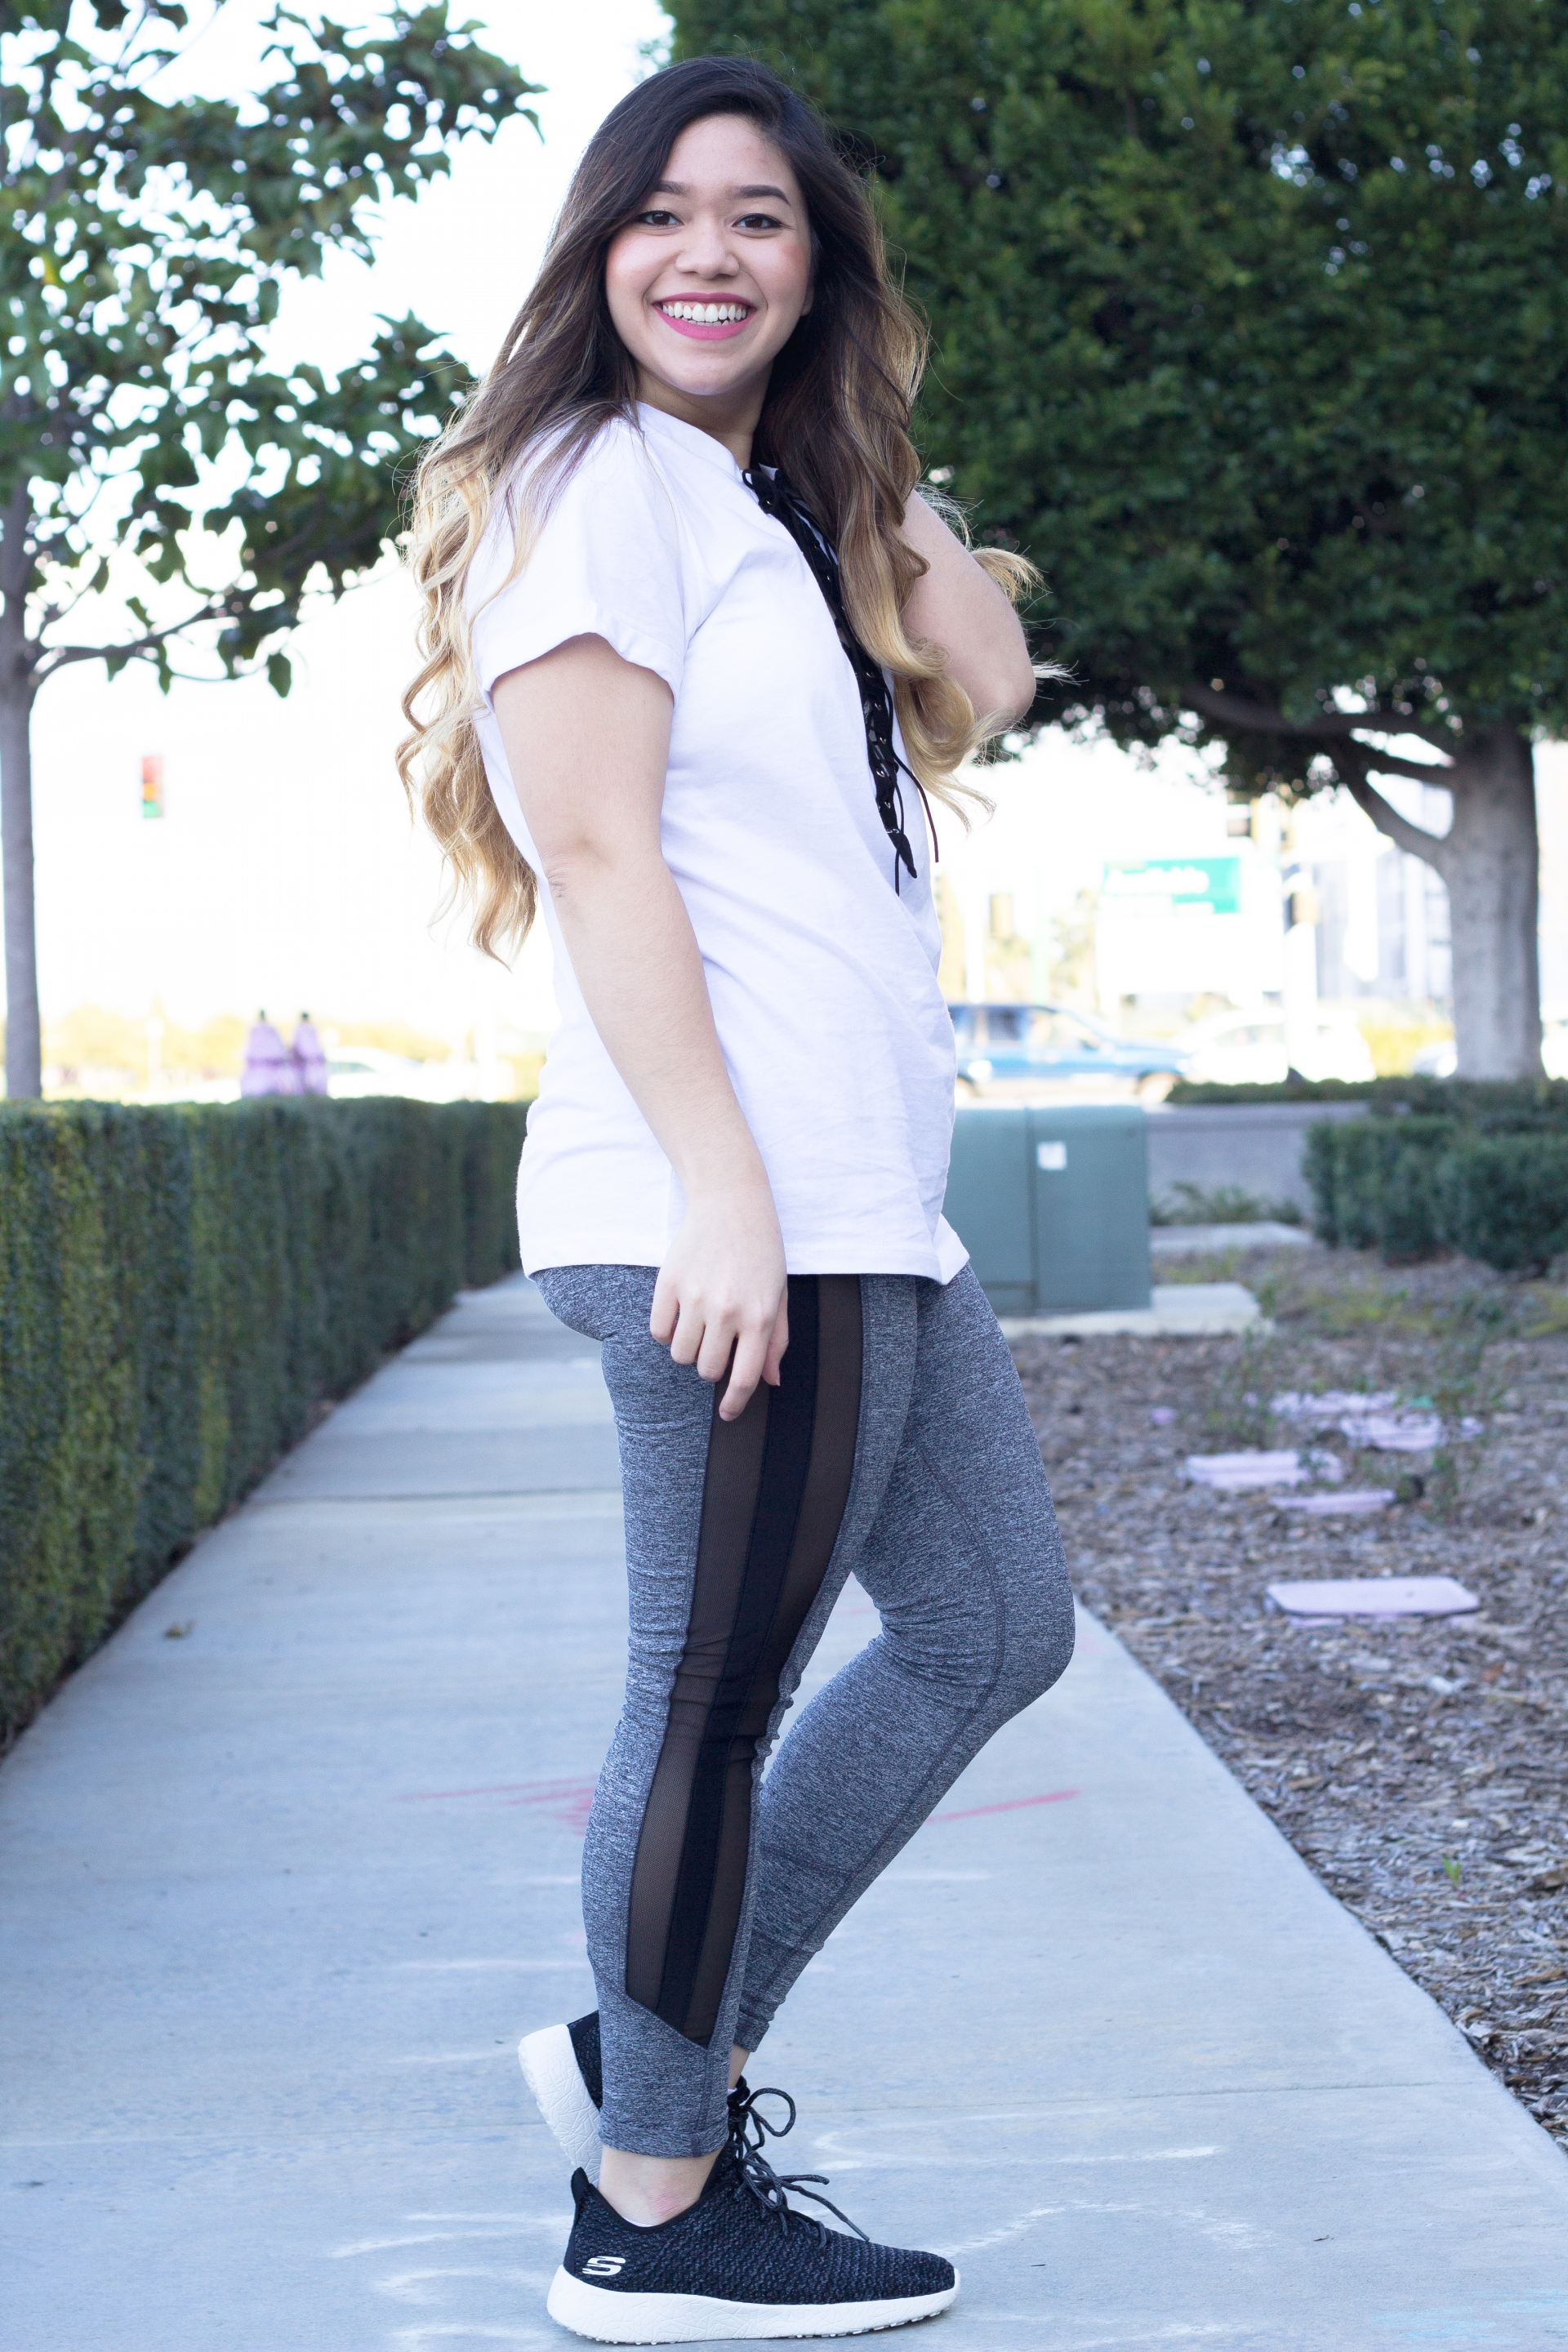 Mesh Workout Leggings